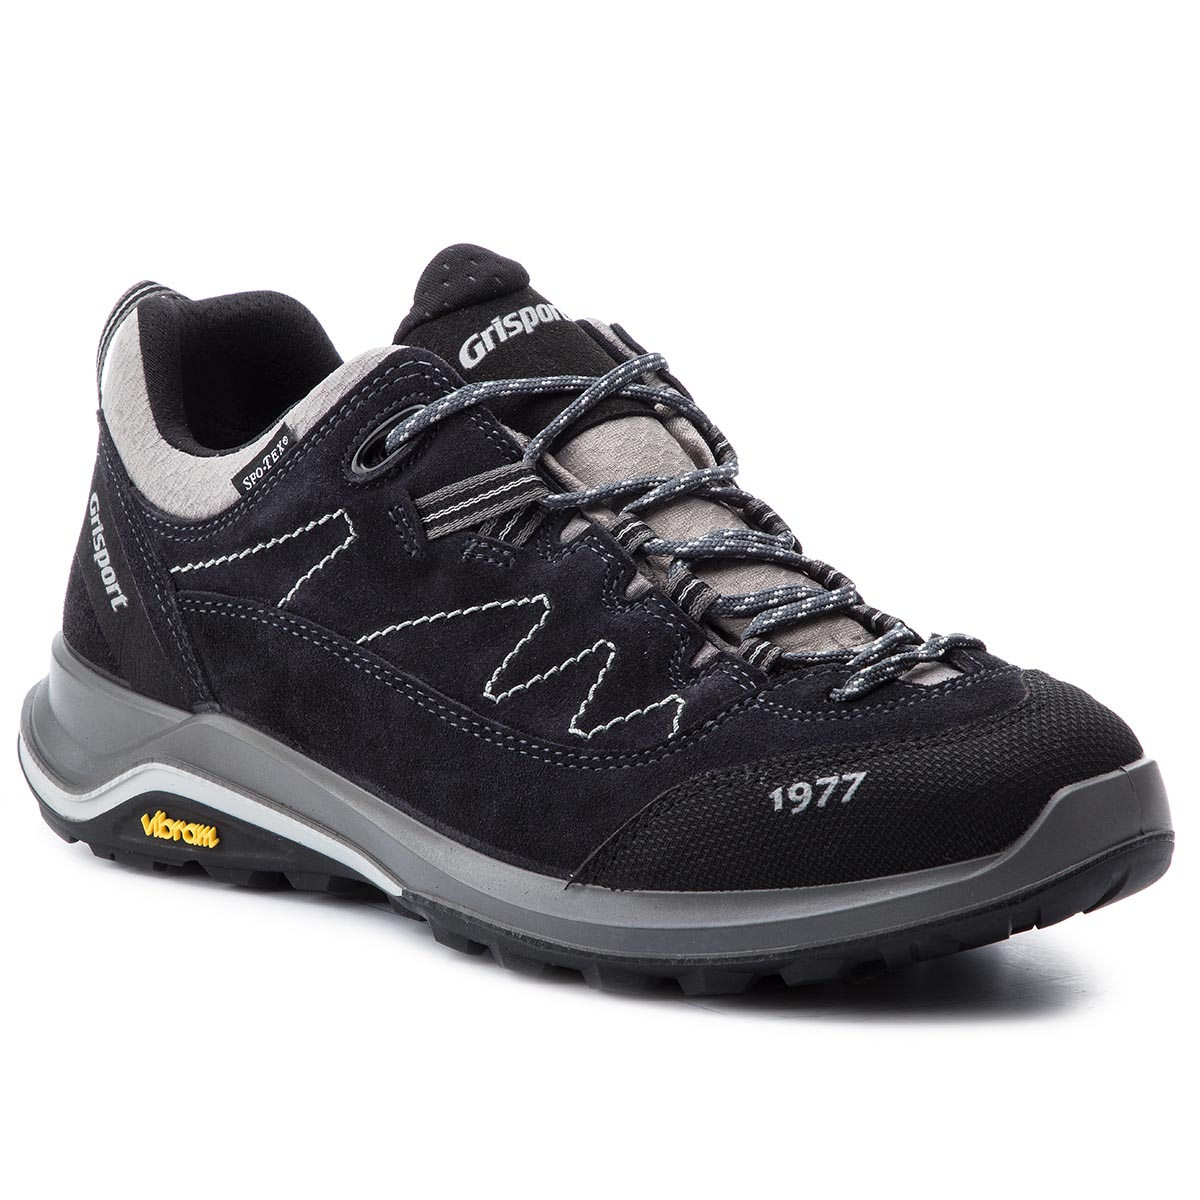 Trekkings Grisport - 14303a1t Artico Aquasport imagine epantofi.ro 2021